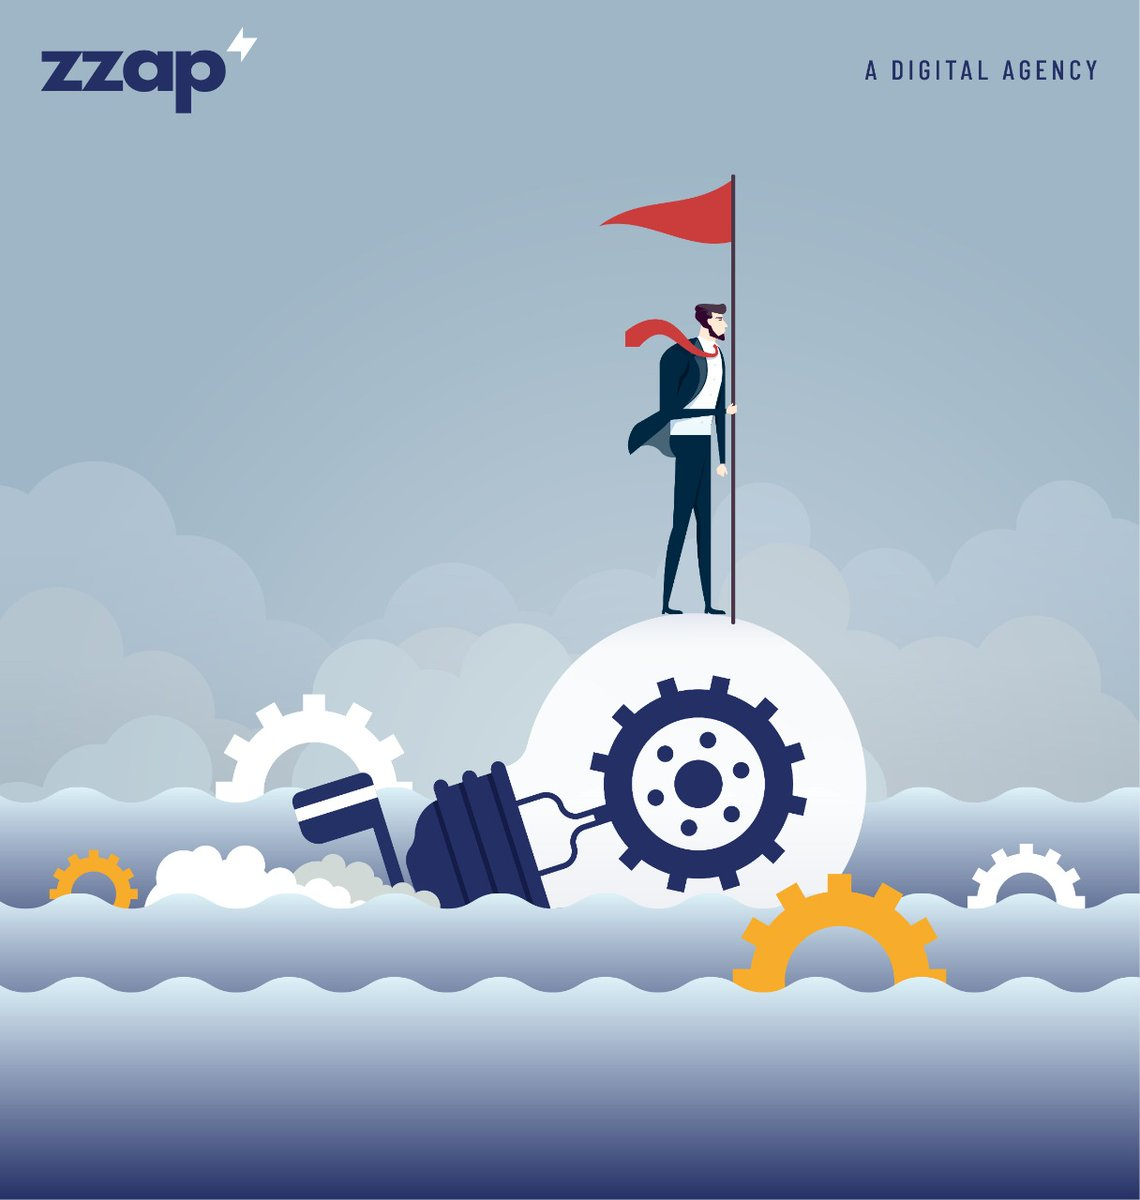 Stand out from your competitors with our services.  #zzapdigitalagency #zzapdigital #digitalmarketing #digital #seo #seotips #marketing #marketingdigital #influencer #internetmarketing #art #socialmediamarketing #socialmedia #instagood #internetmarketing #Twitter https://t.co/6G0SdZe2Xd